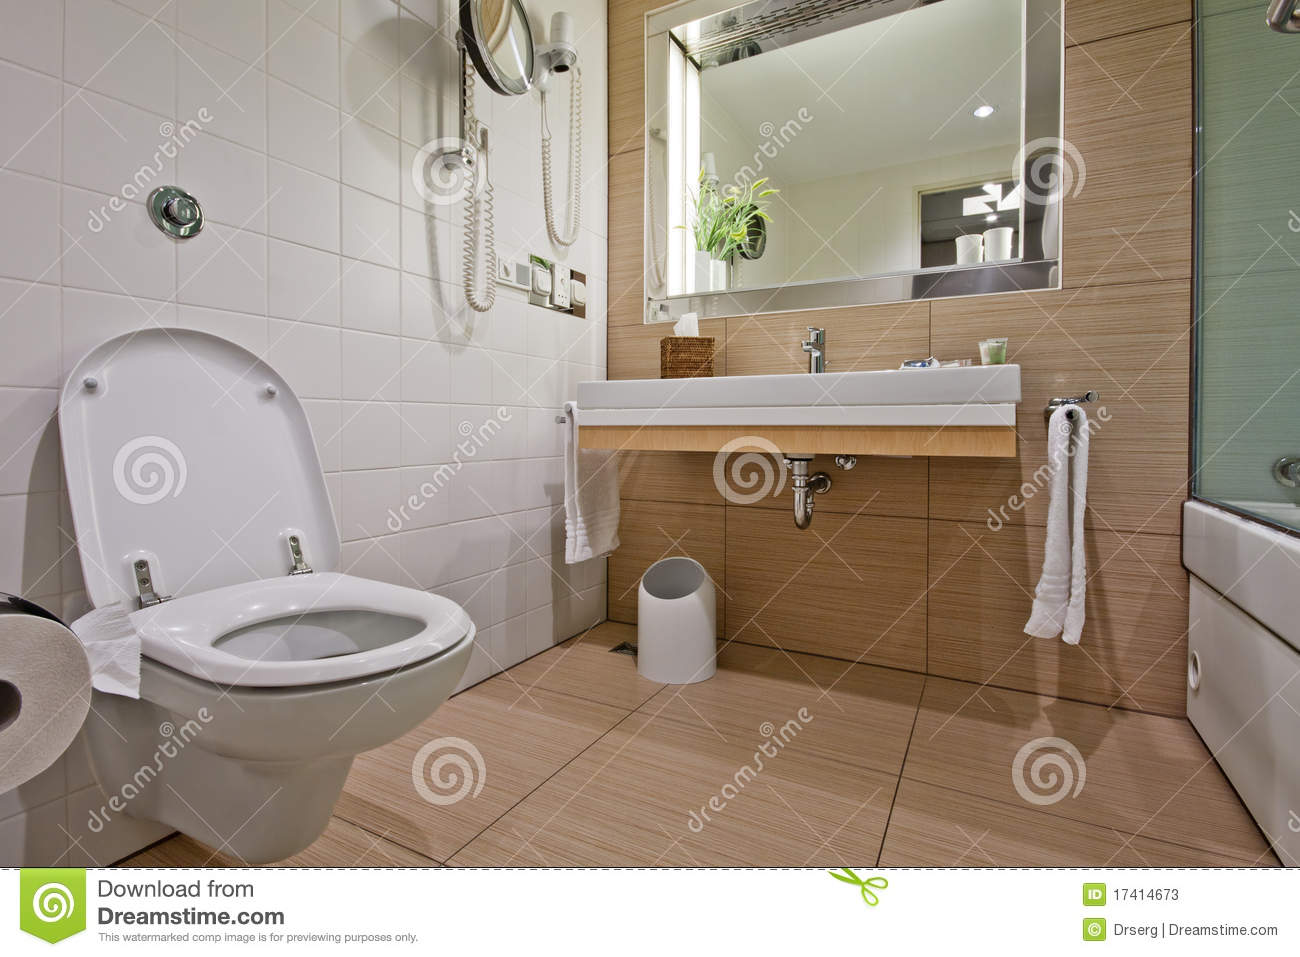 Modern bathroom with toilet sink stock image image of for Commode salle de bain